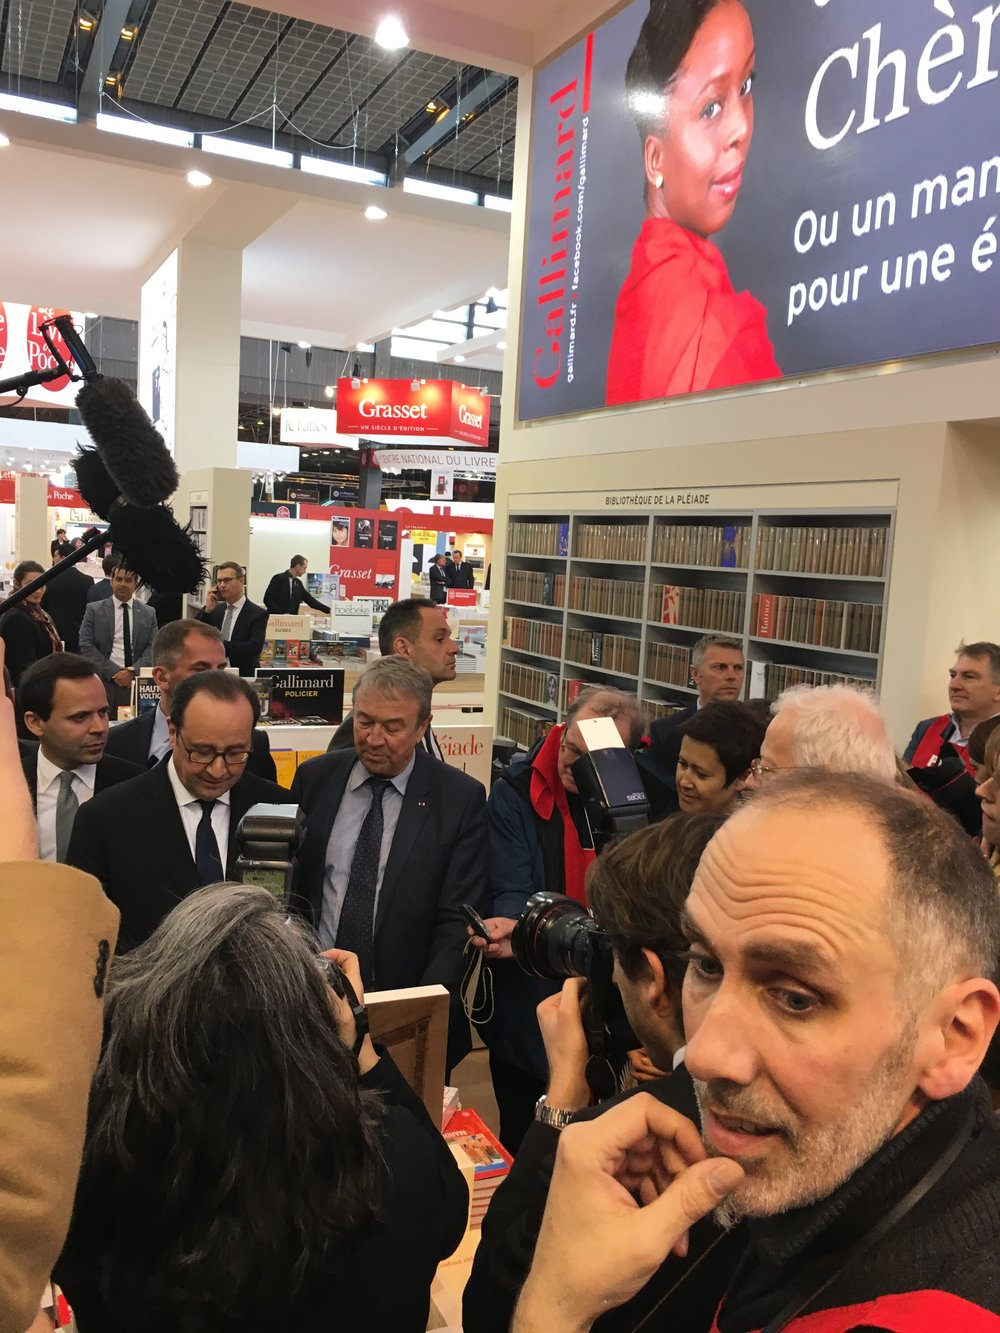 STAND EXPOSITION MADRIGALL LIVRE PARIS 2017 HOLLANDE 3.JPG